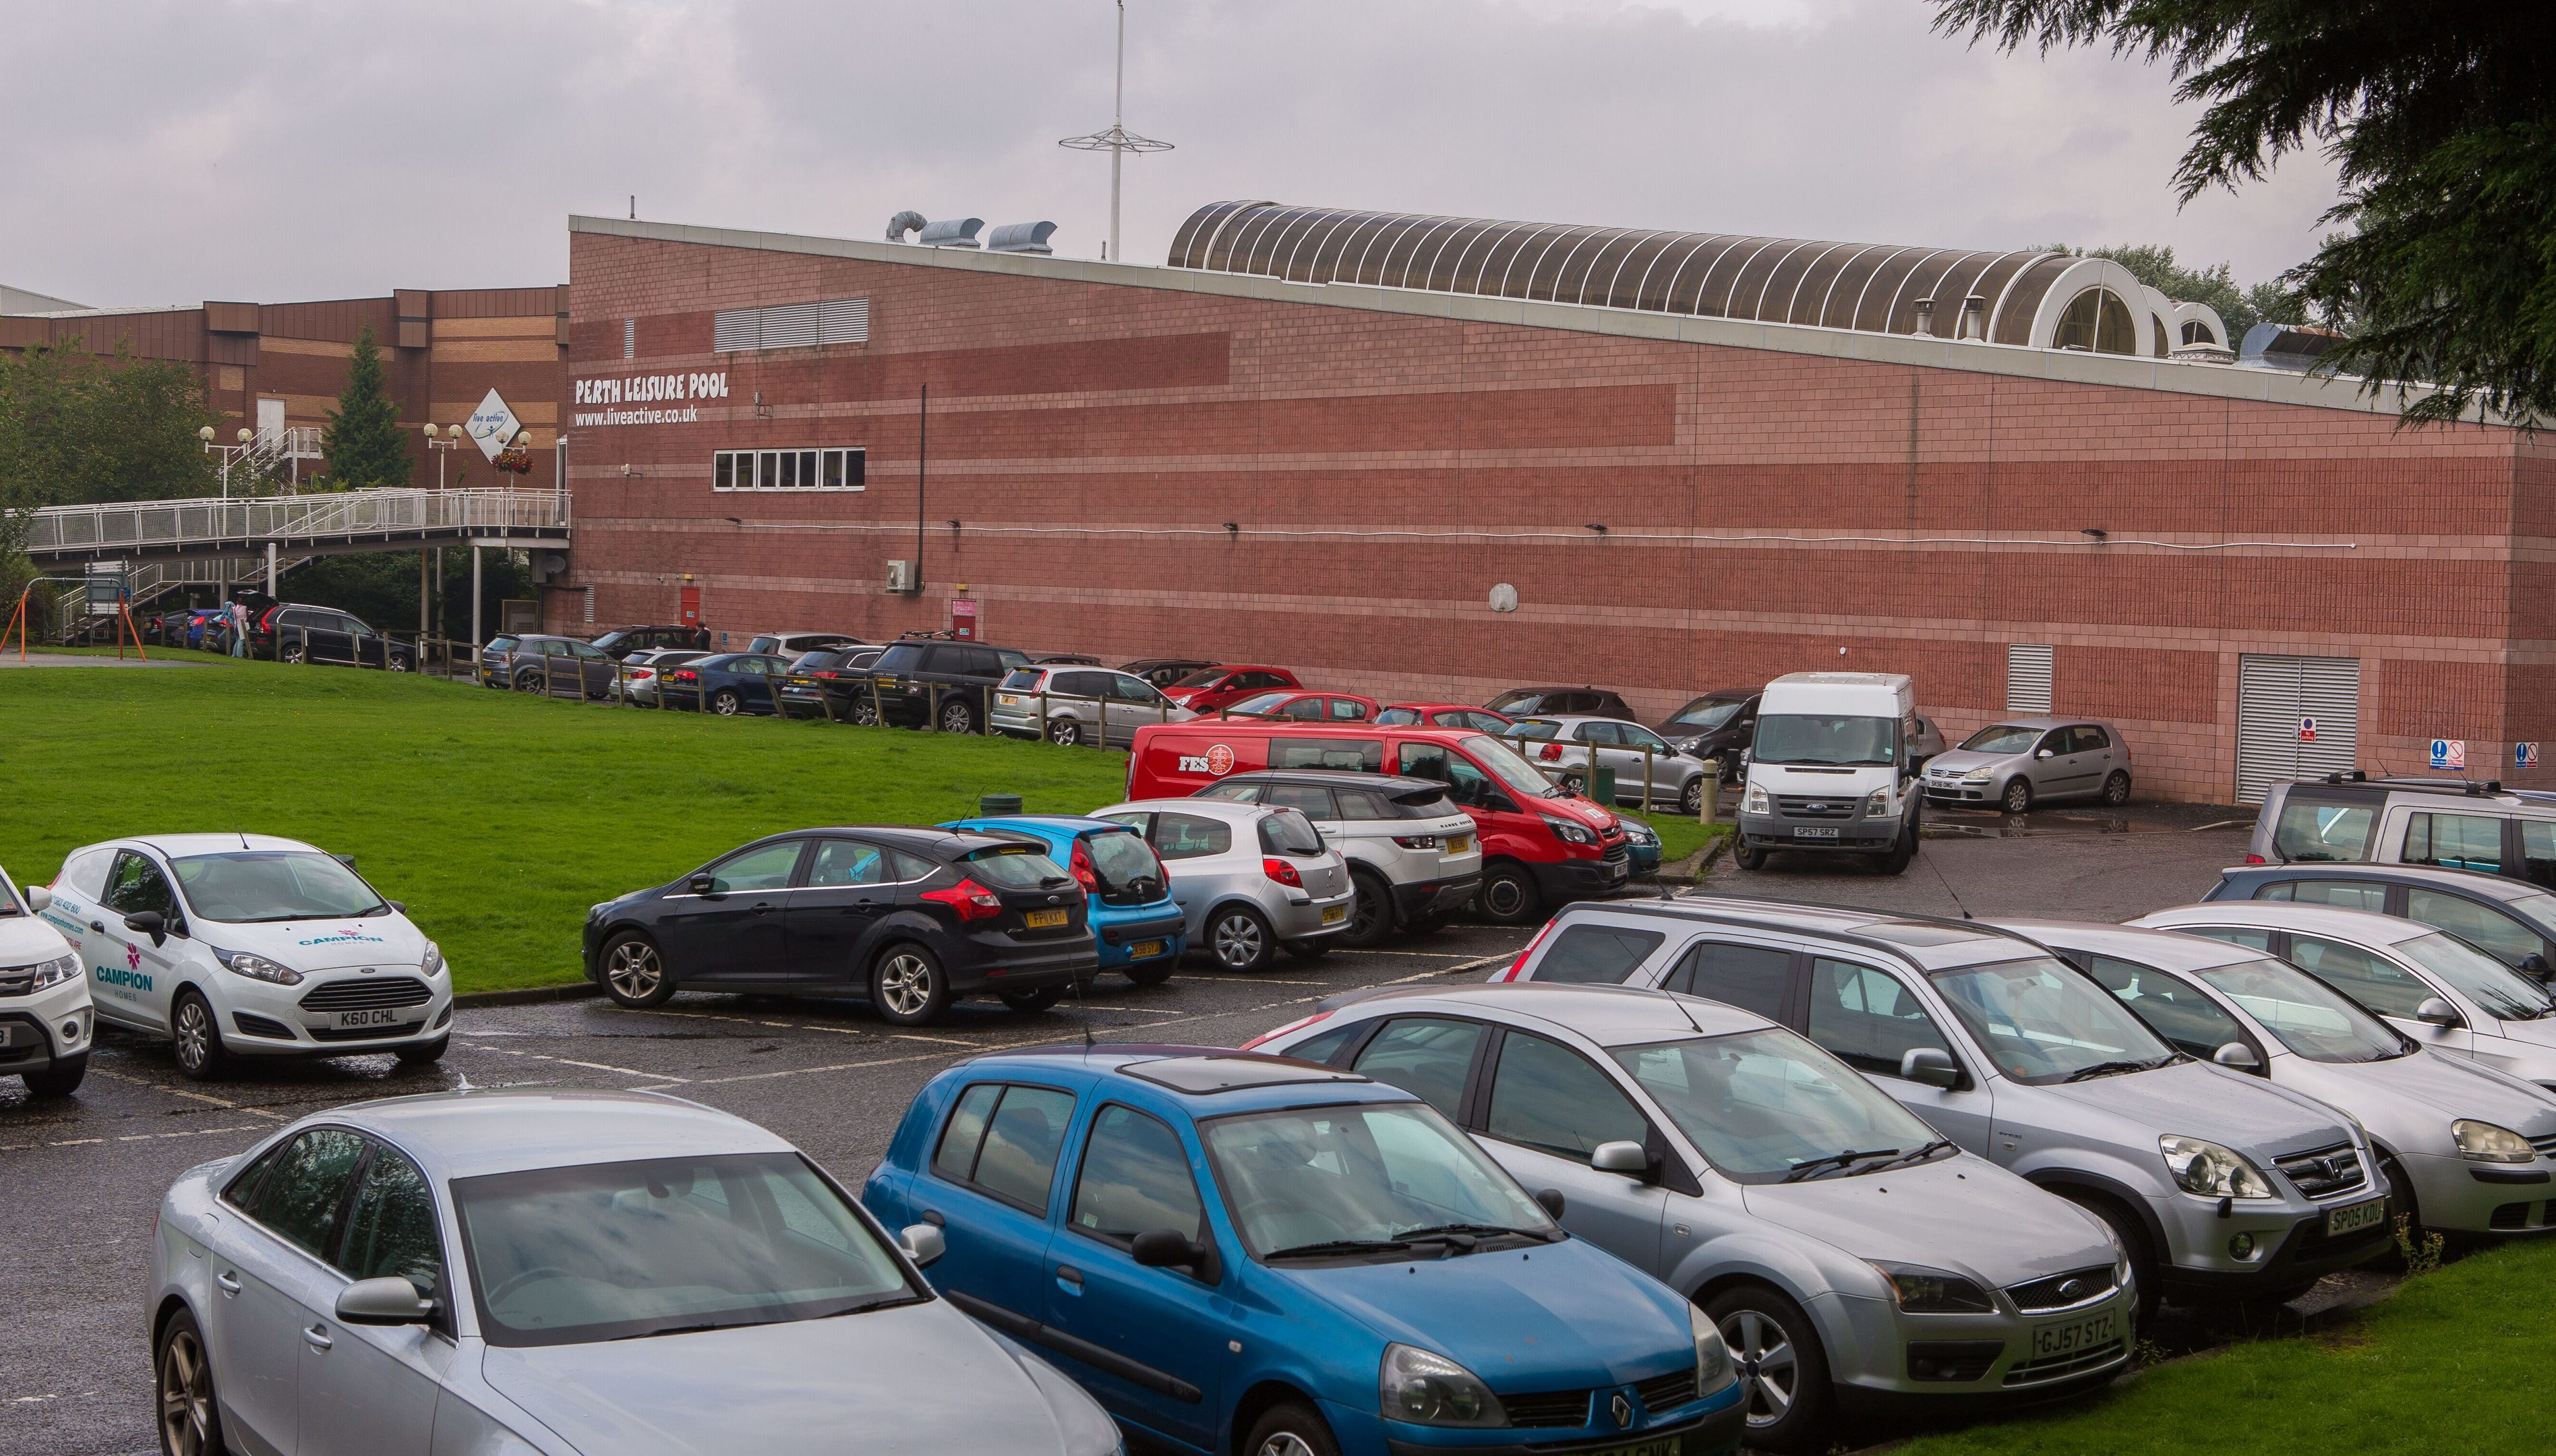 Parking at Perth Leisure Centre.